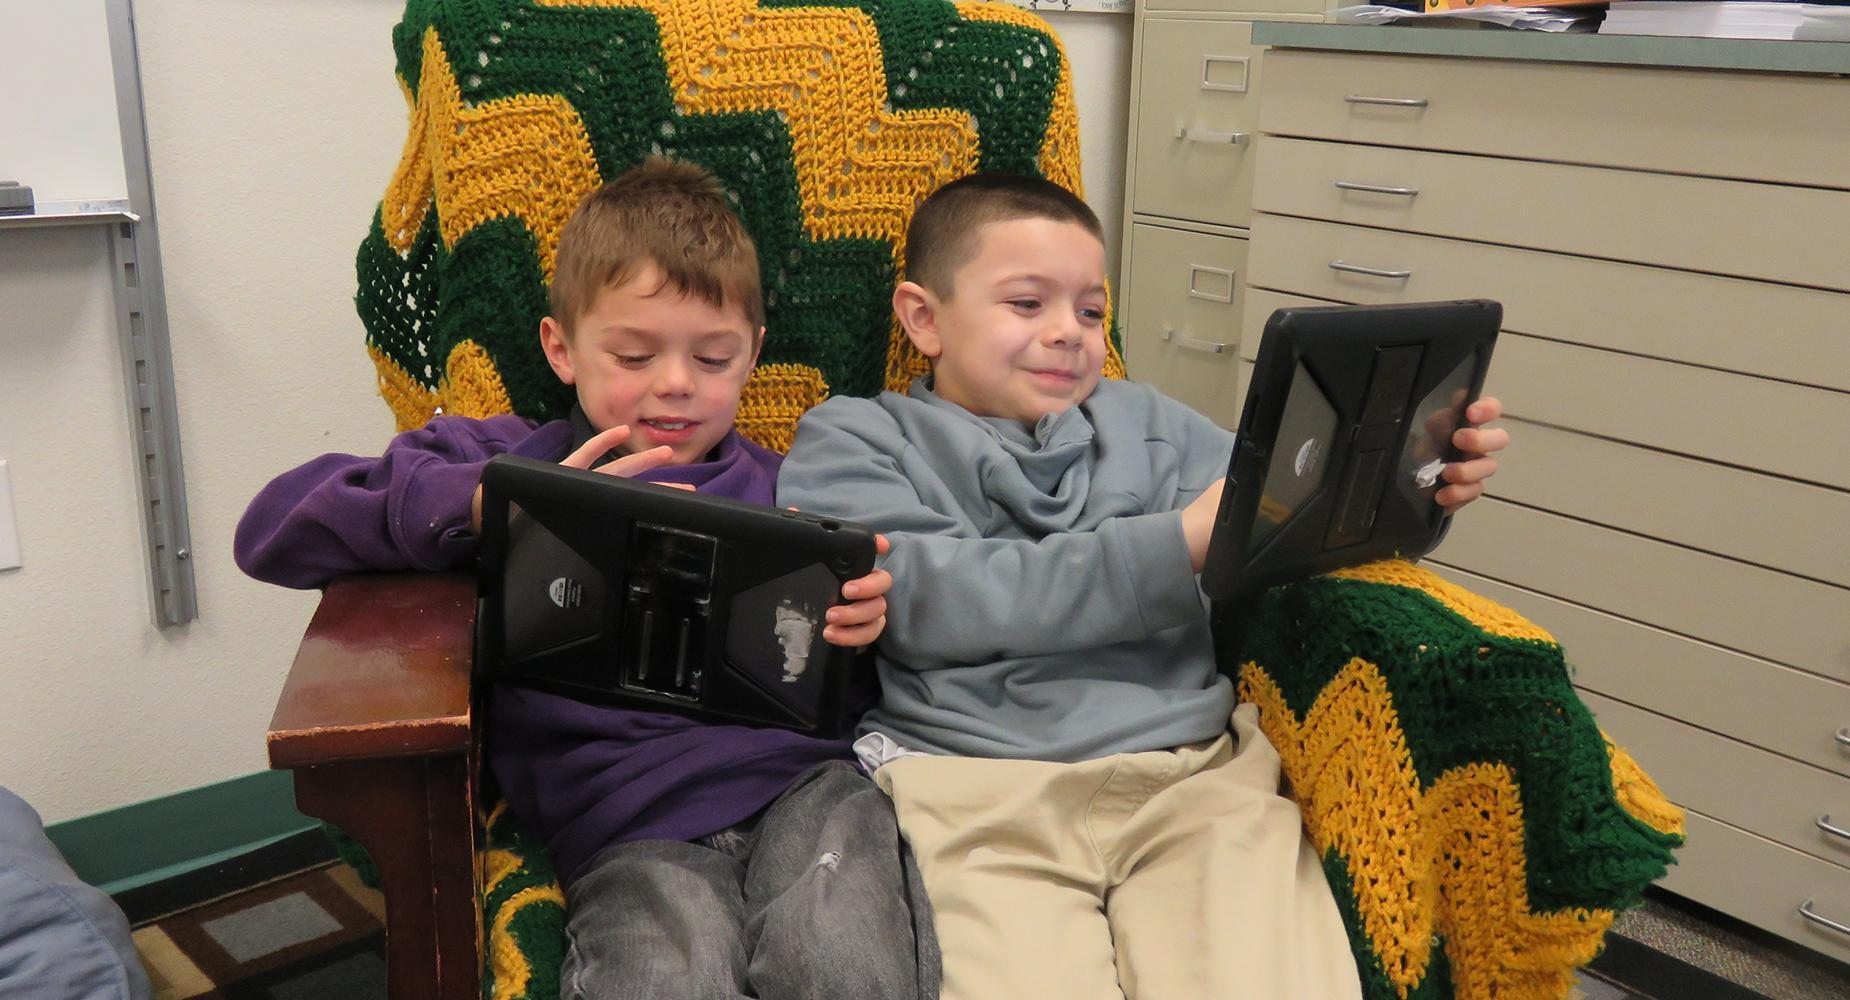 Two boys work on their iPads in a comfy easy chair.